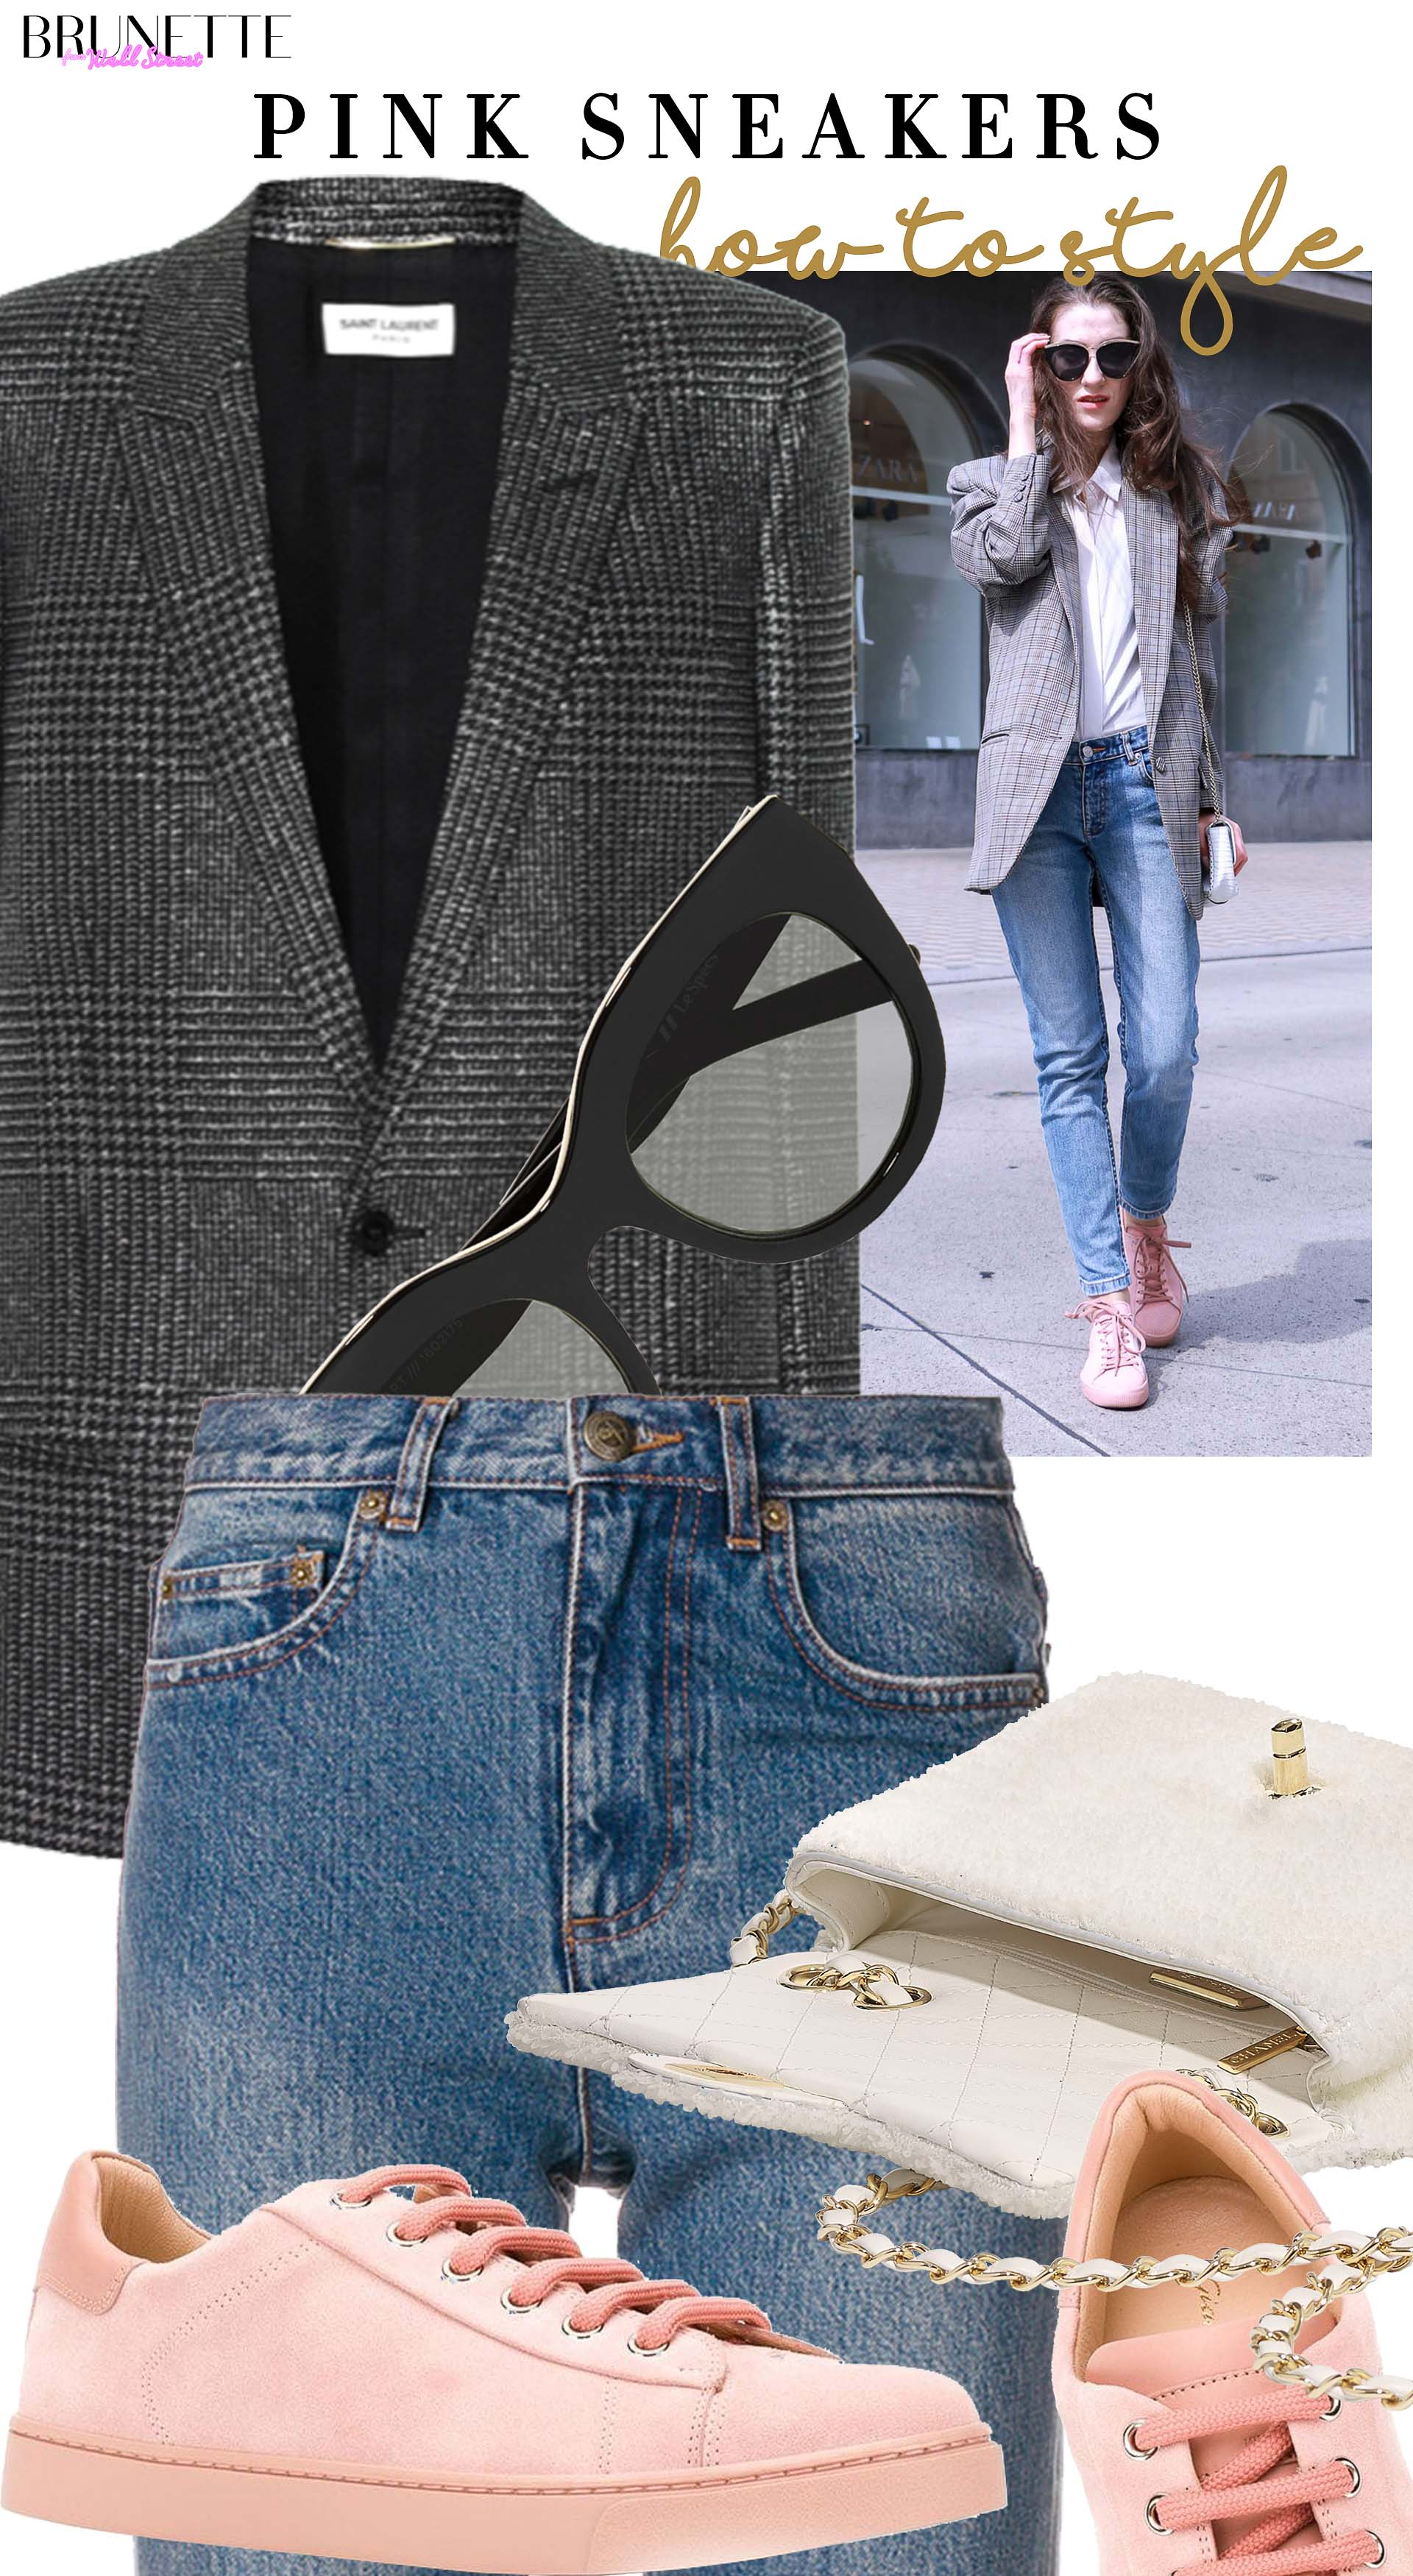 Brunette from Wall Street how to style pink sneakers grey blazer blue jeans Chanel bag